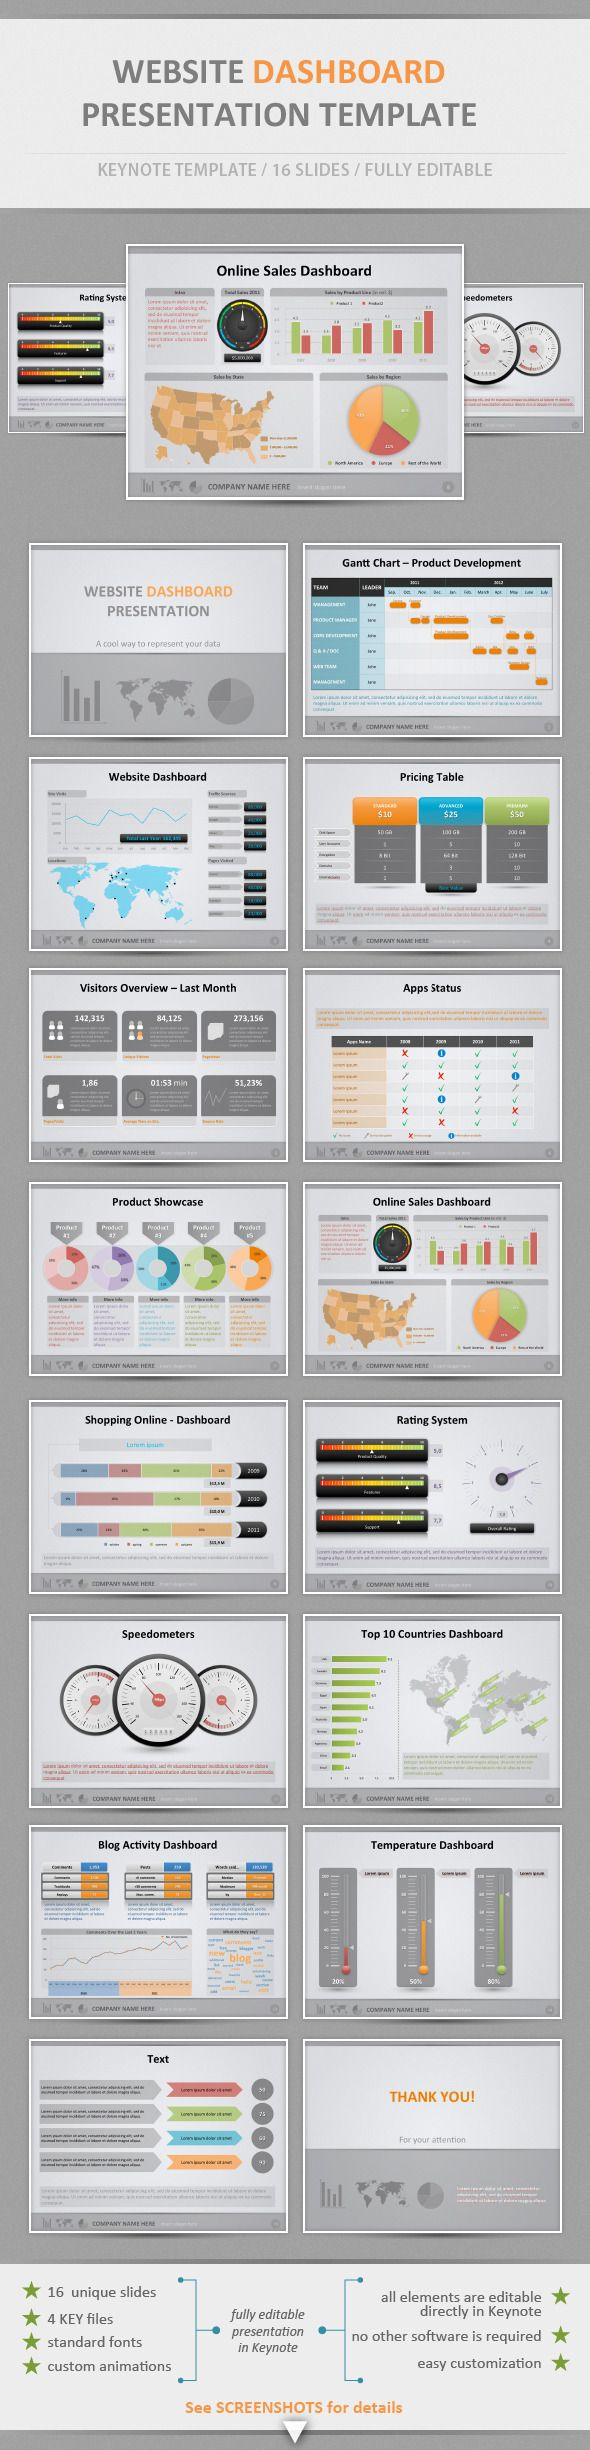 Website Dashboard Presentation Template — Keynote KEY #diagram #orange • Available here → https://graphicriver.net/item/website-dashboard-presentation-template/2103253?ref=pxcr